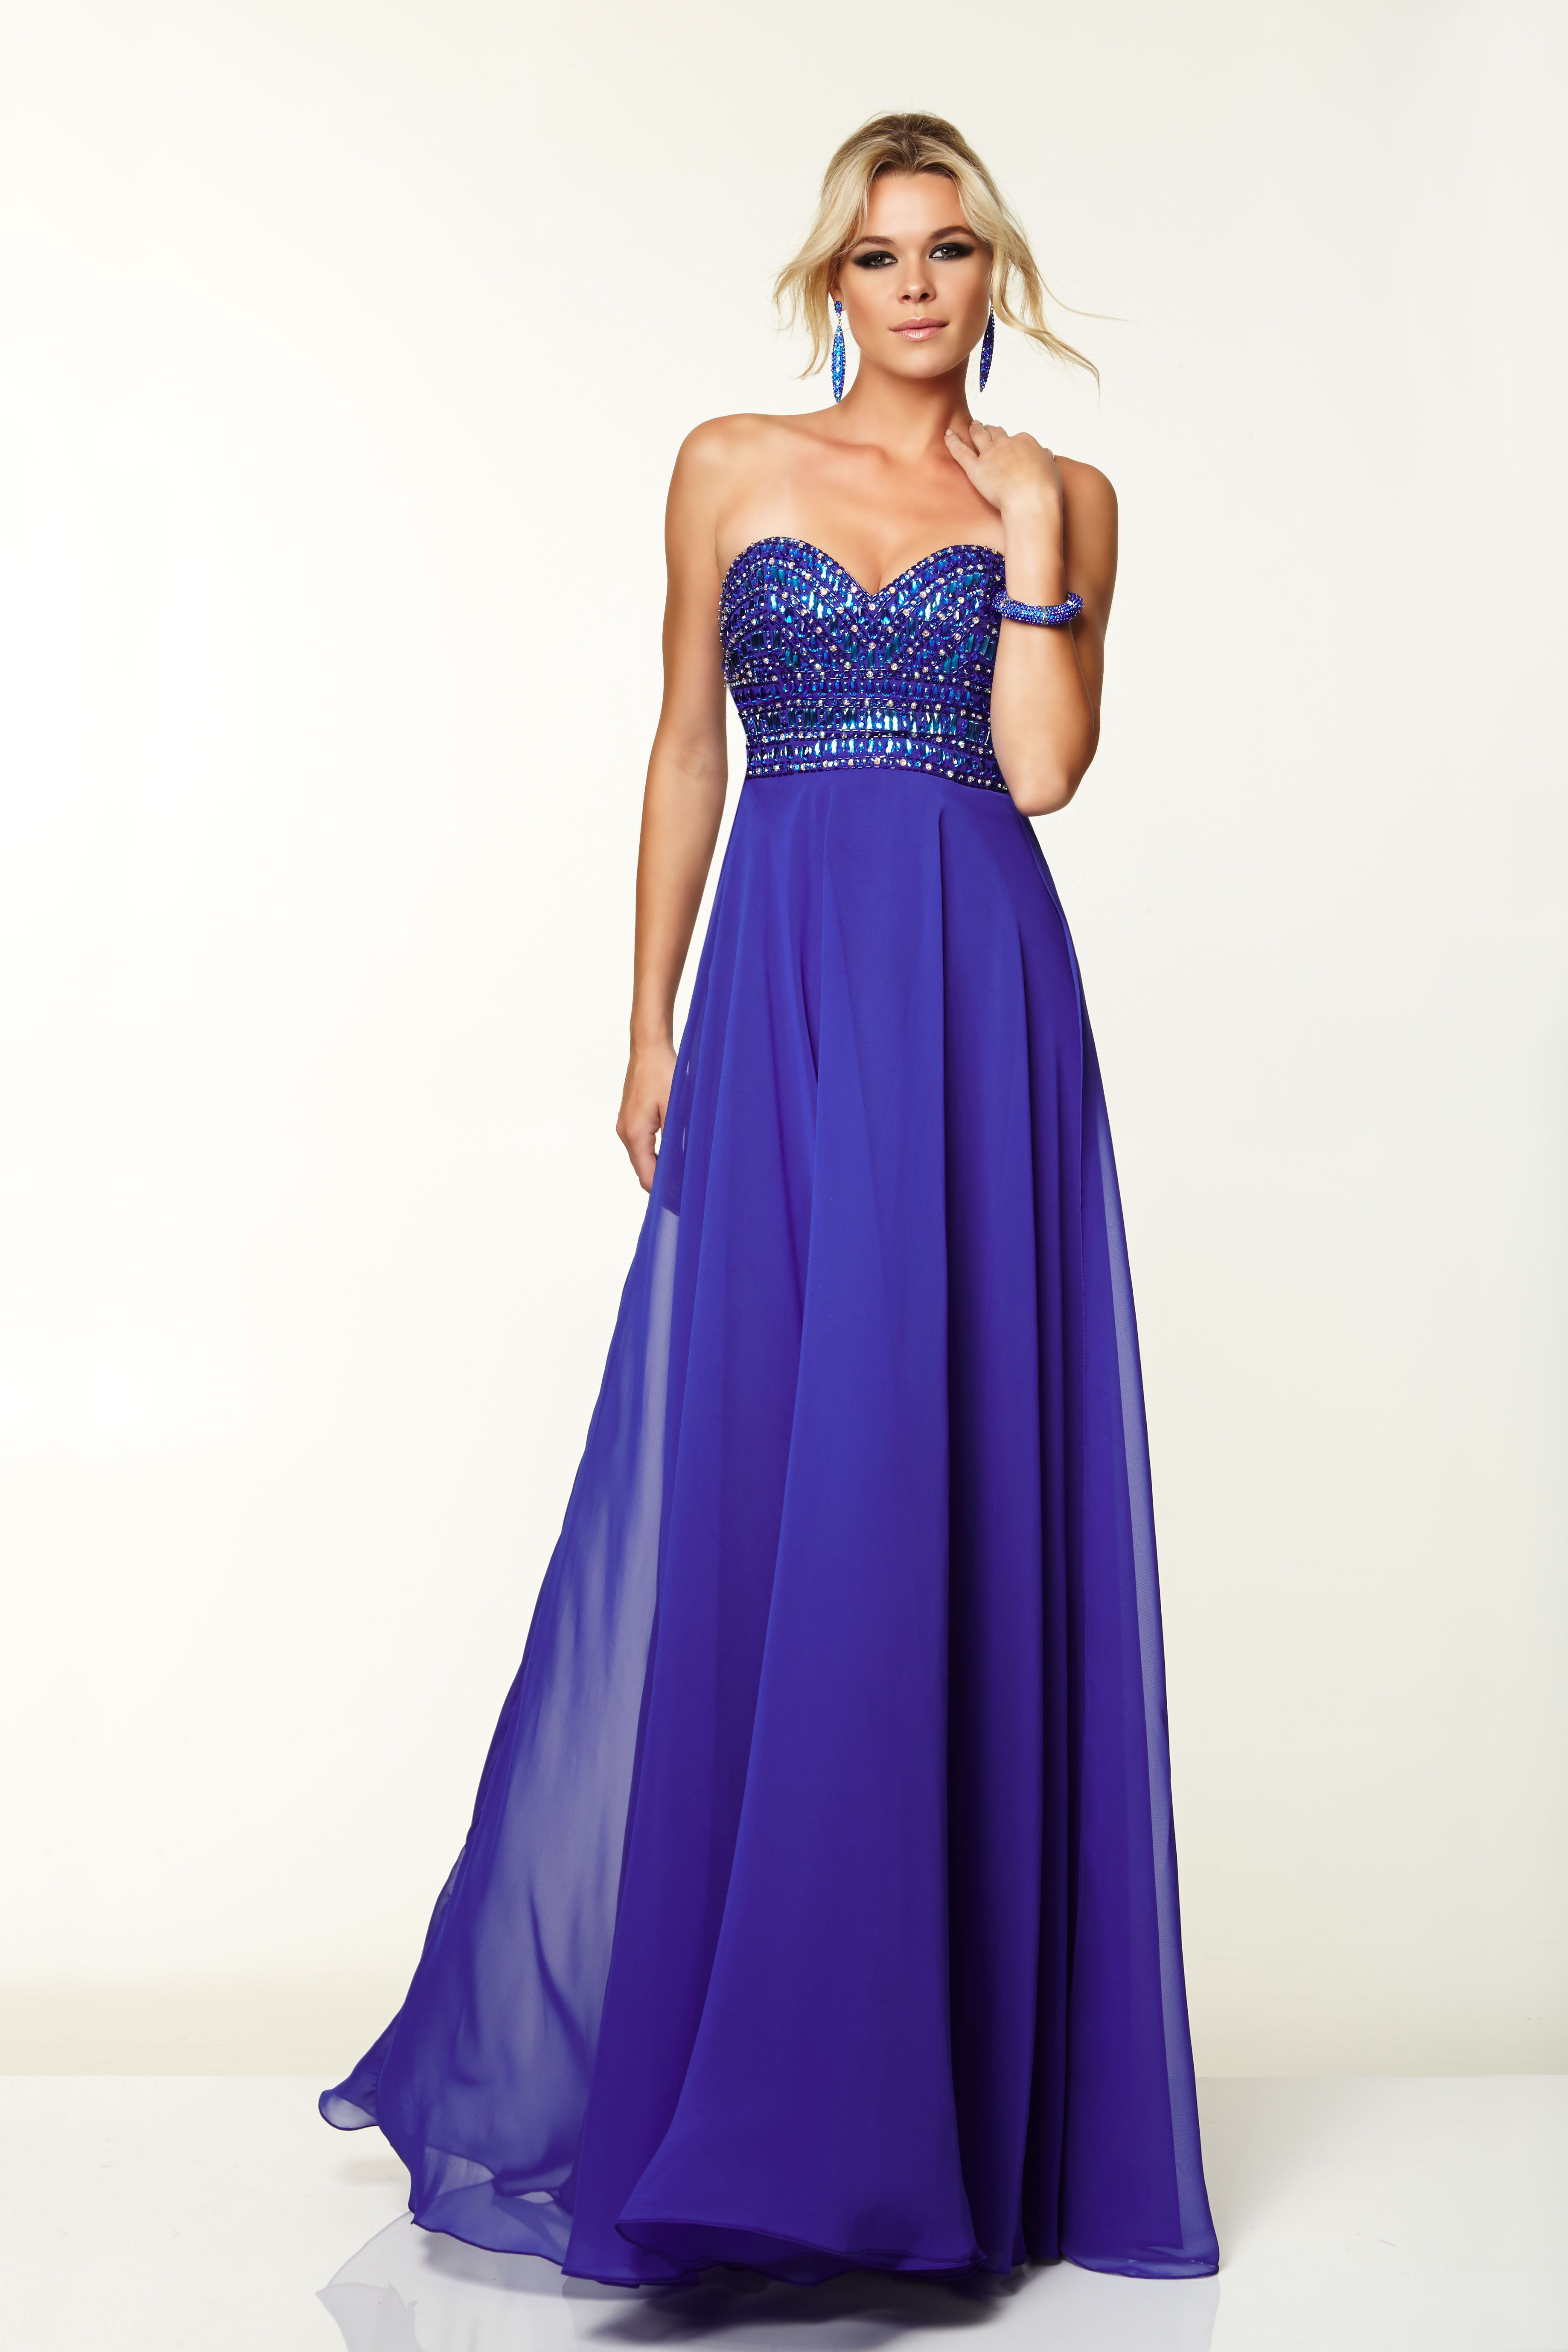 Sweetheart With Jeweled Bodice  by Mori Lee, $428, paparazziprom.com   - Seventeen.com